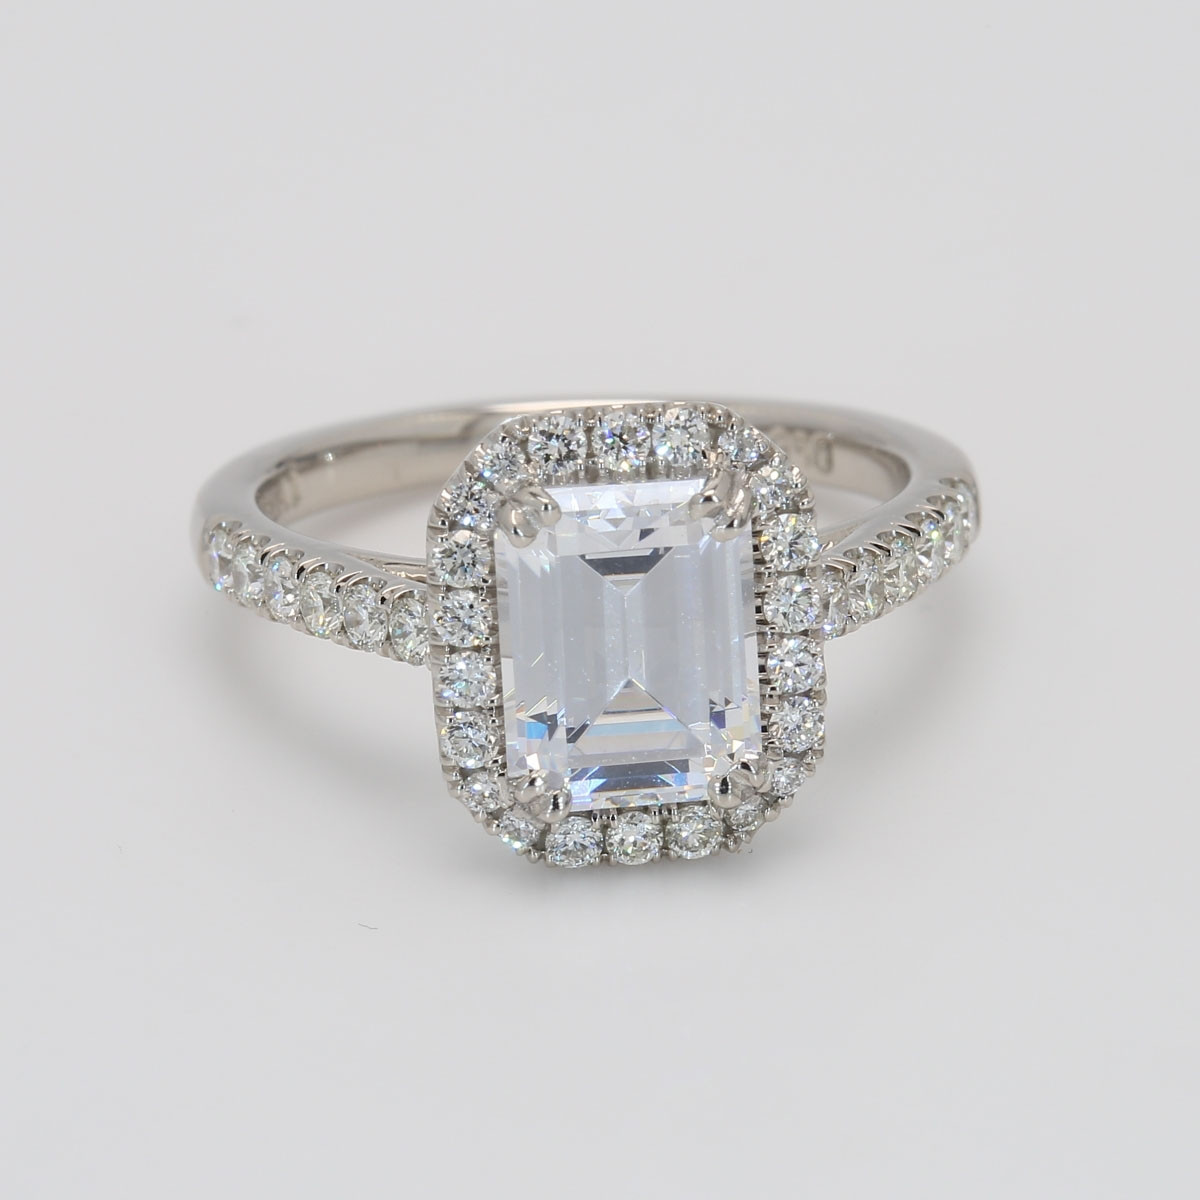 Custom GIA Emerald Cut Halo Engagement Ring in Platinum